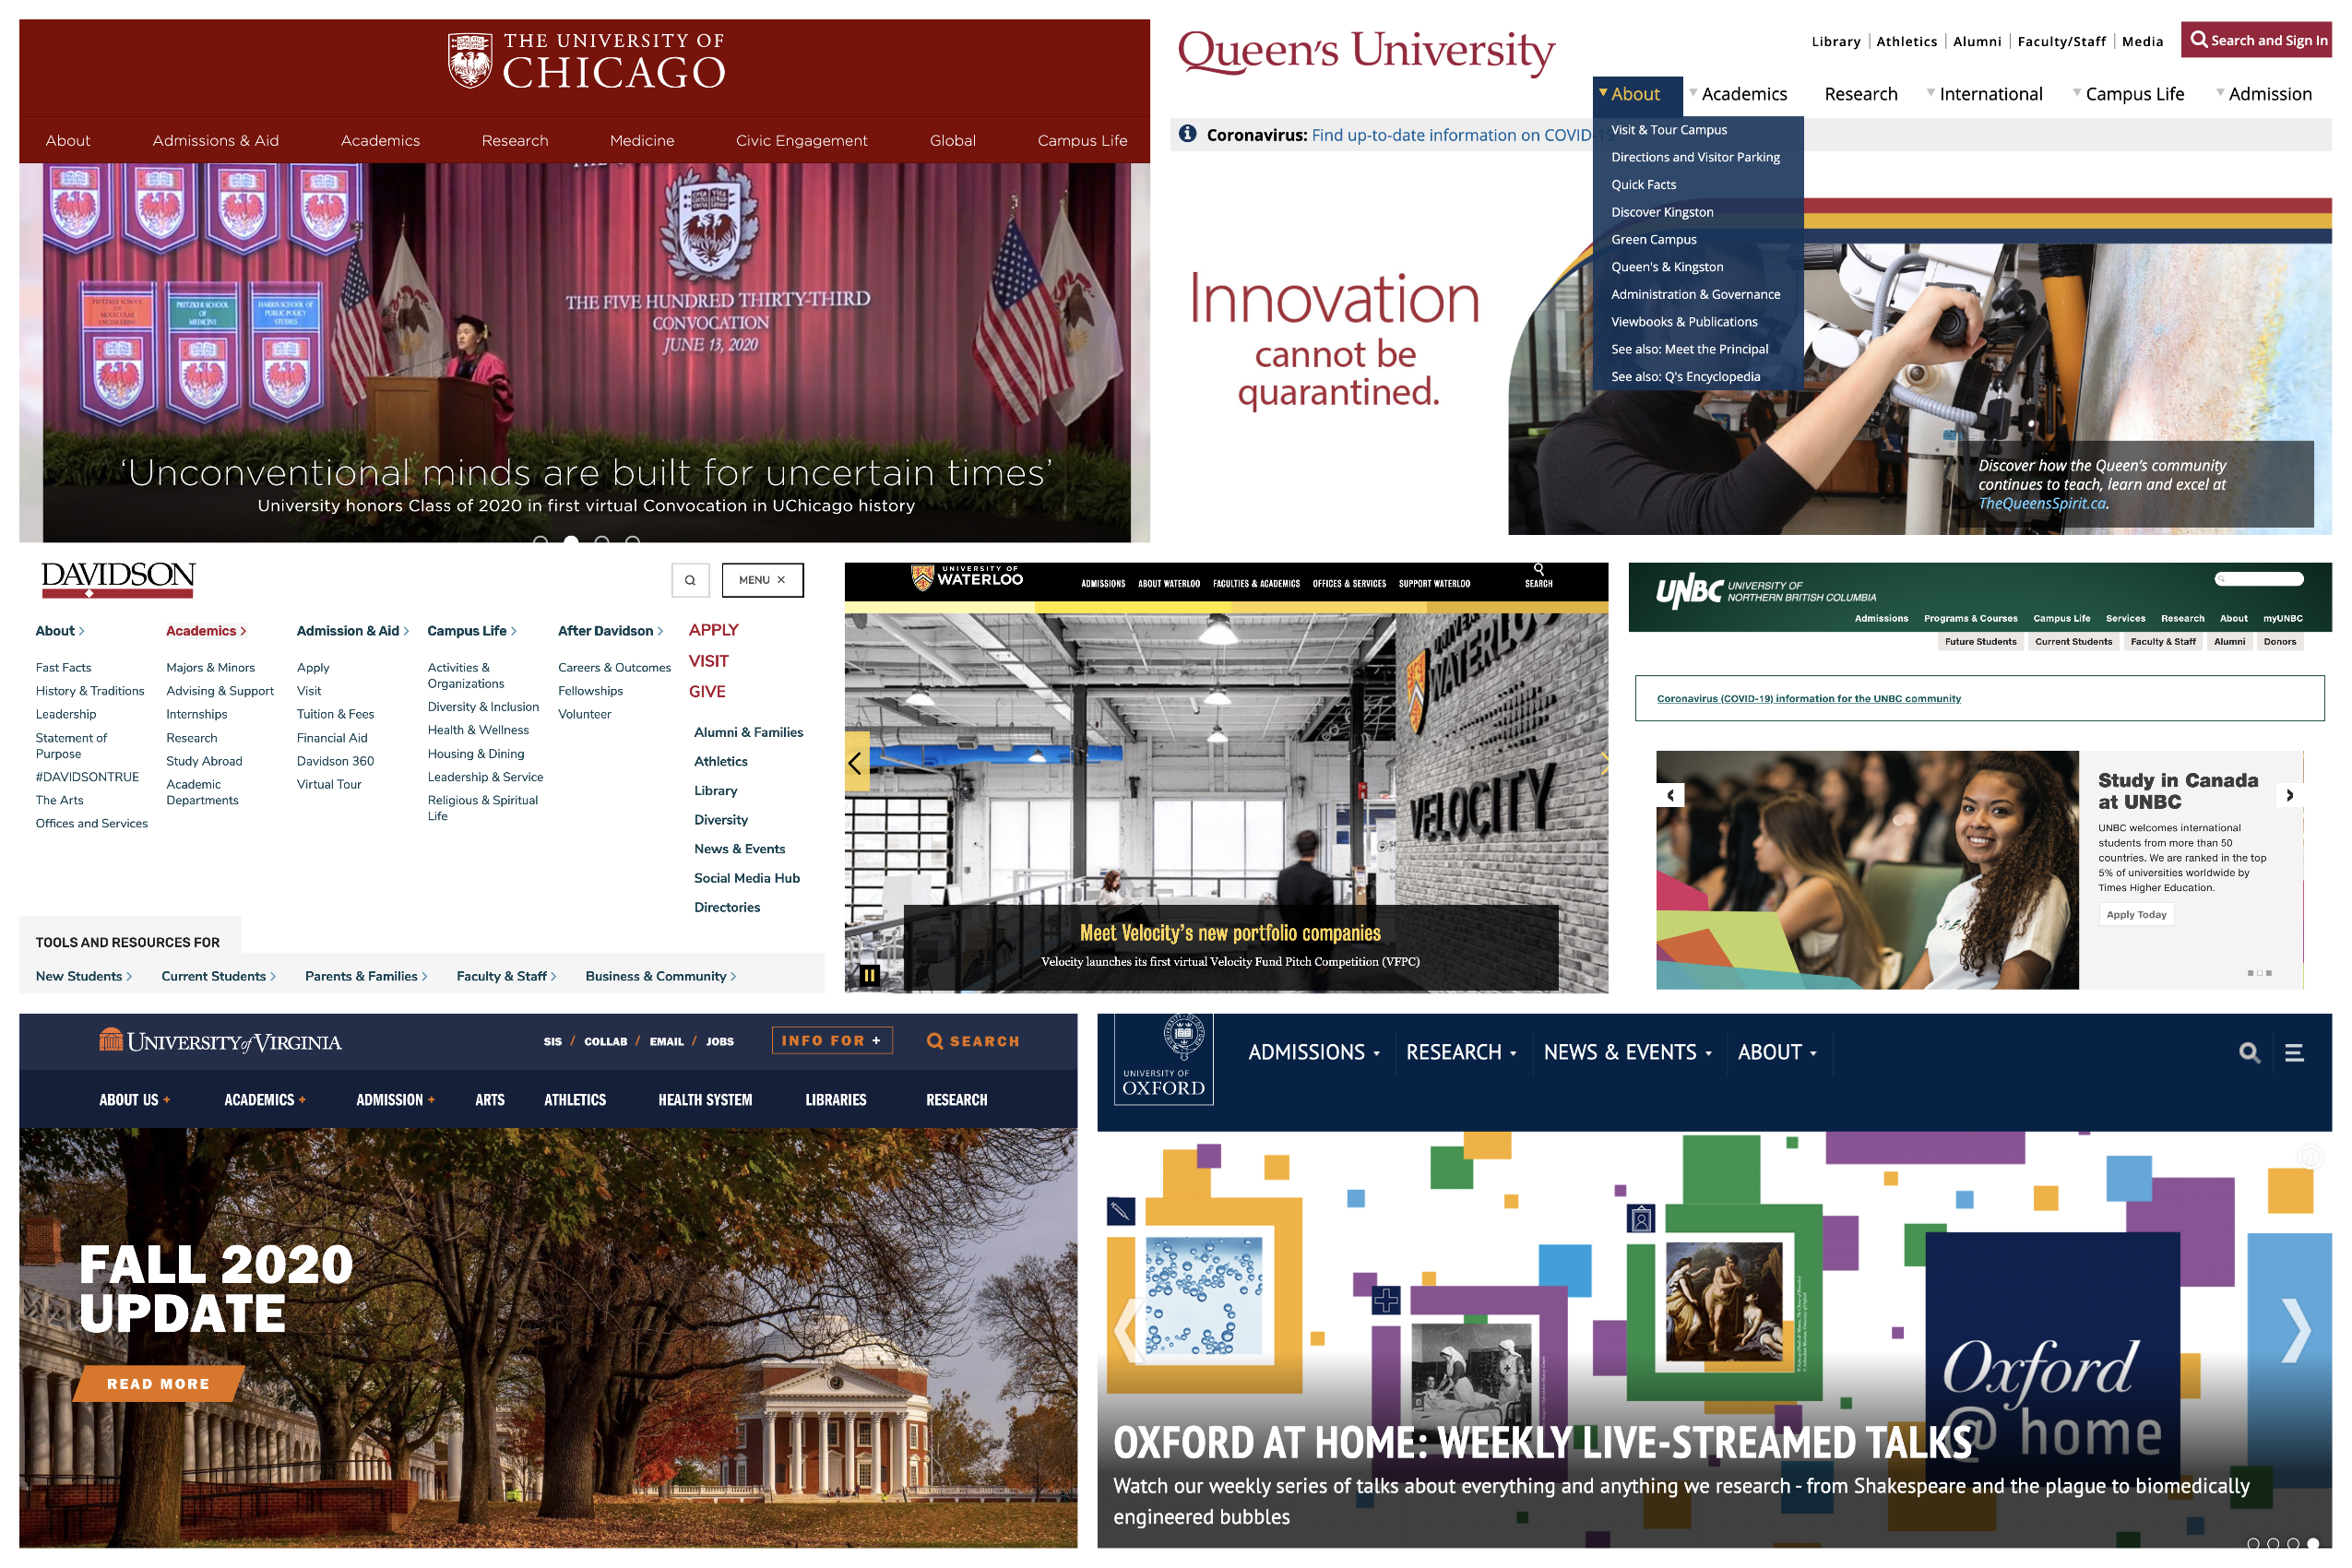 A compilation of various website header designs from institutions of higher education